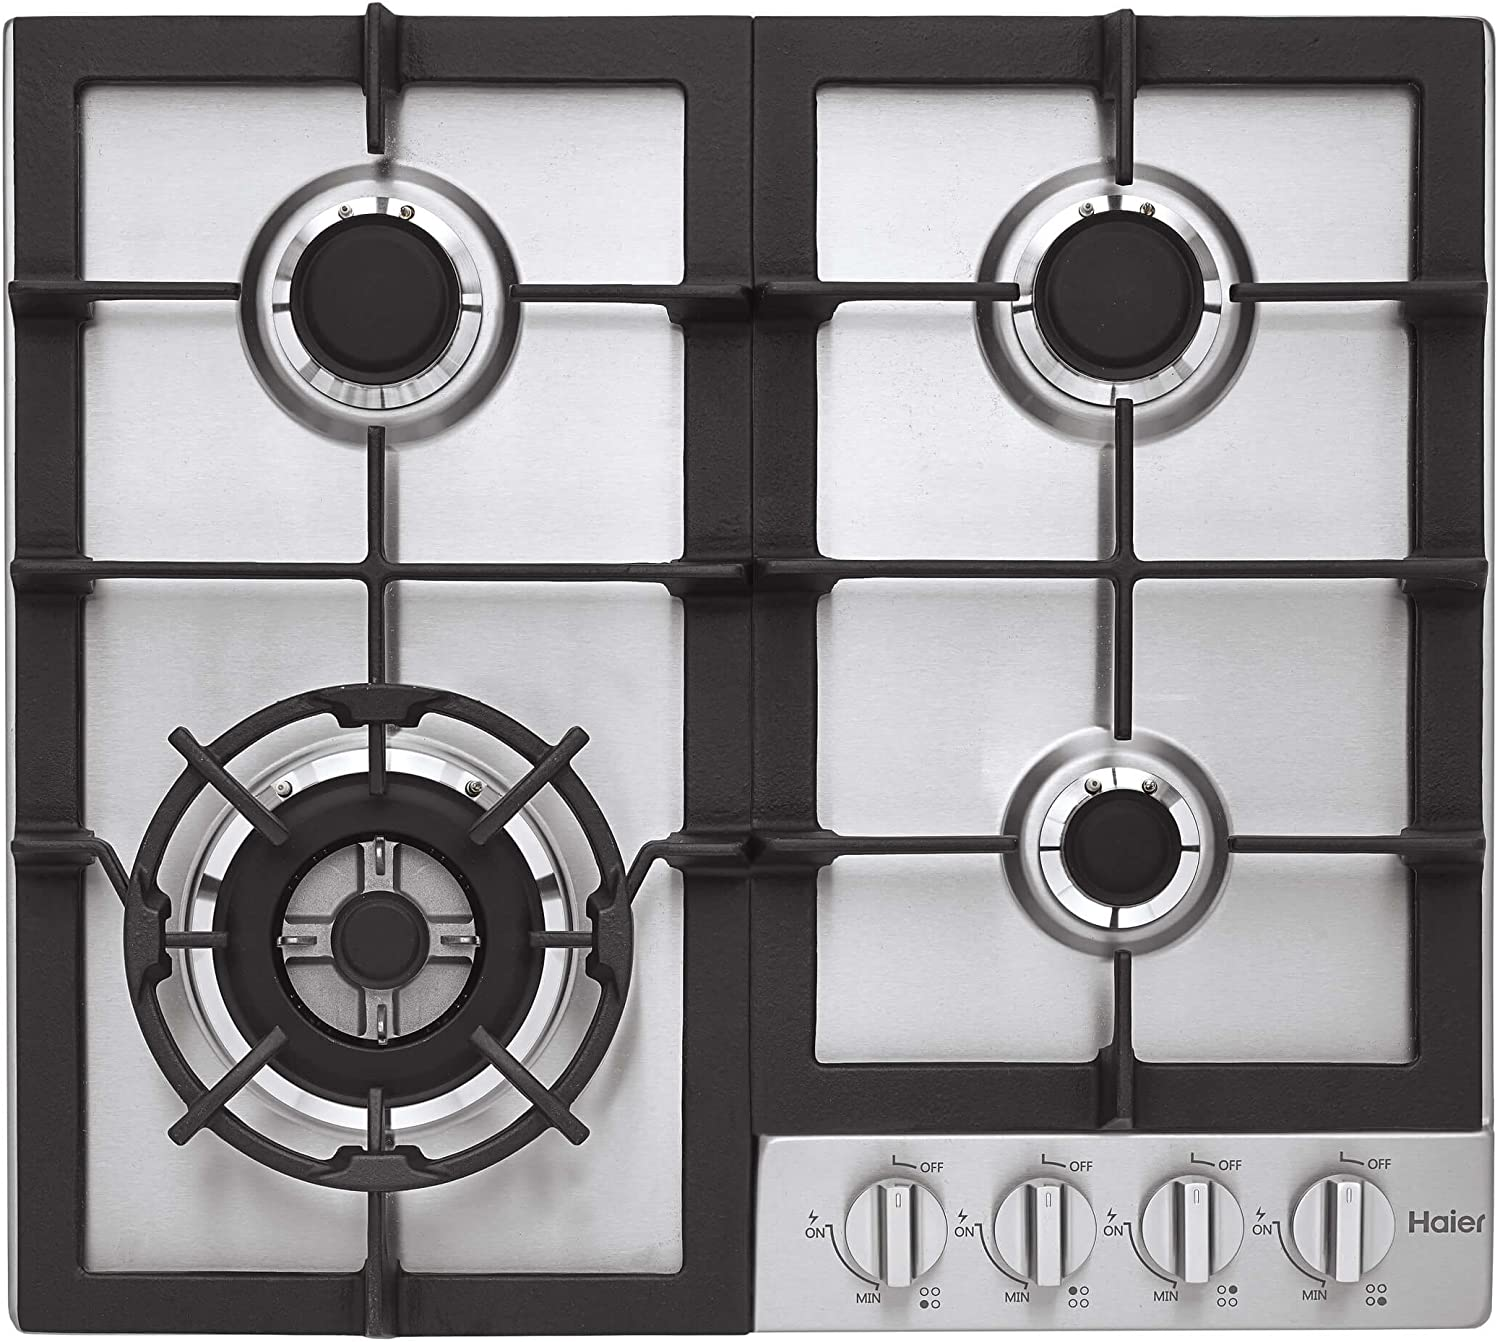 """22.81"""" Gas Cooktop with 4 Burners 81Xm2BzWW6sLSL1500_"""